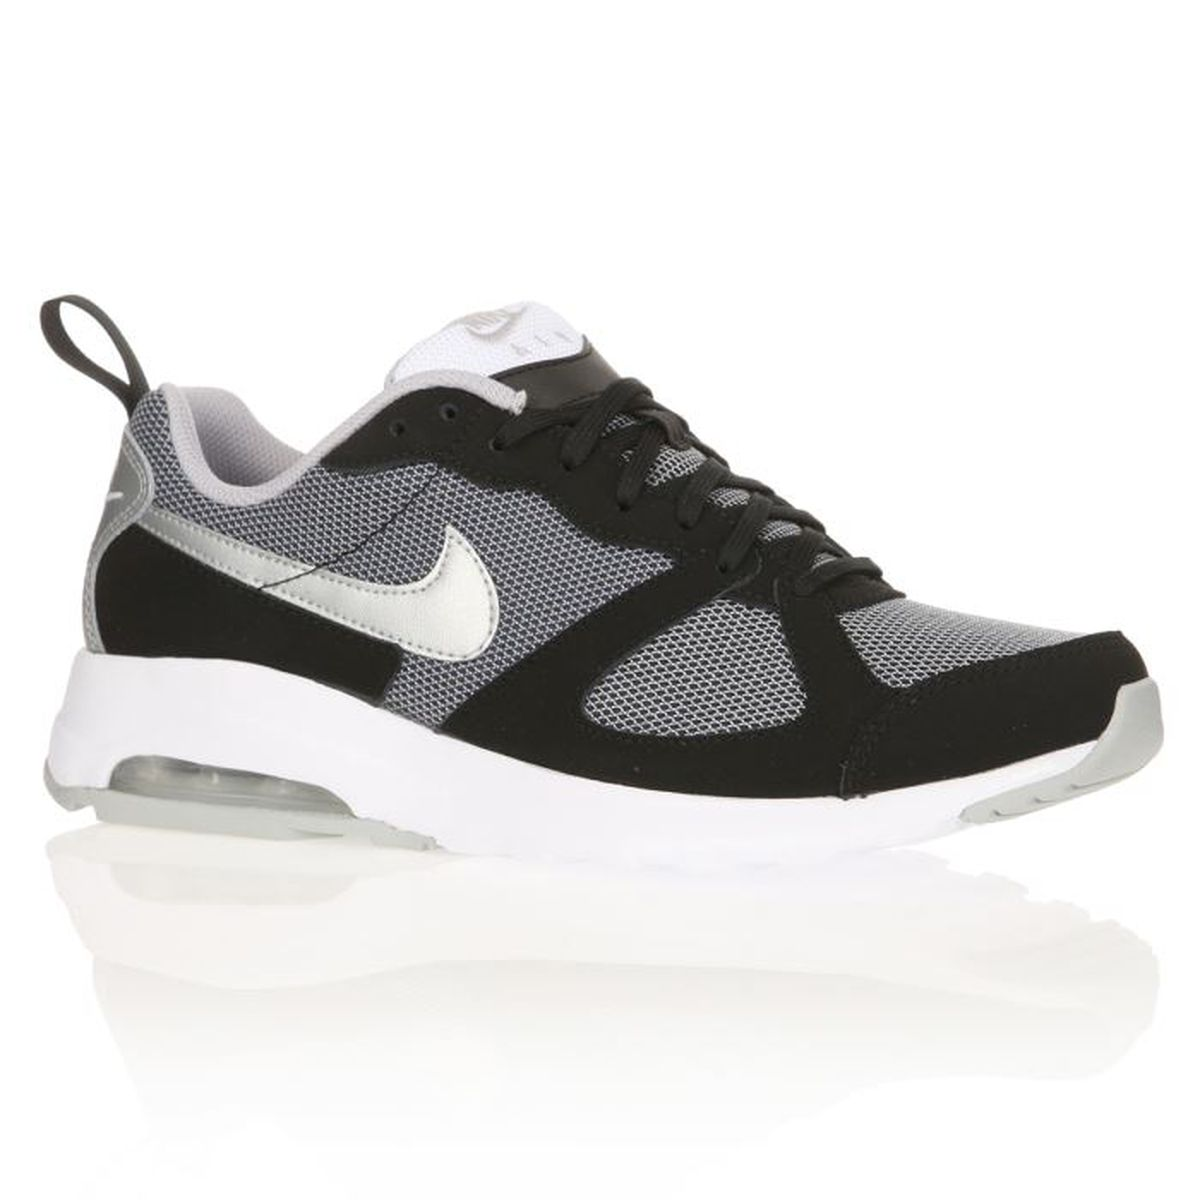 BASKET NIKE Baskets Wmns Air Max Muse Femme